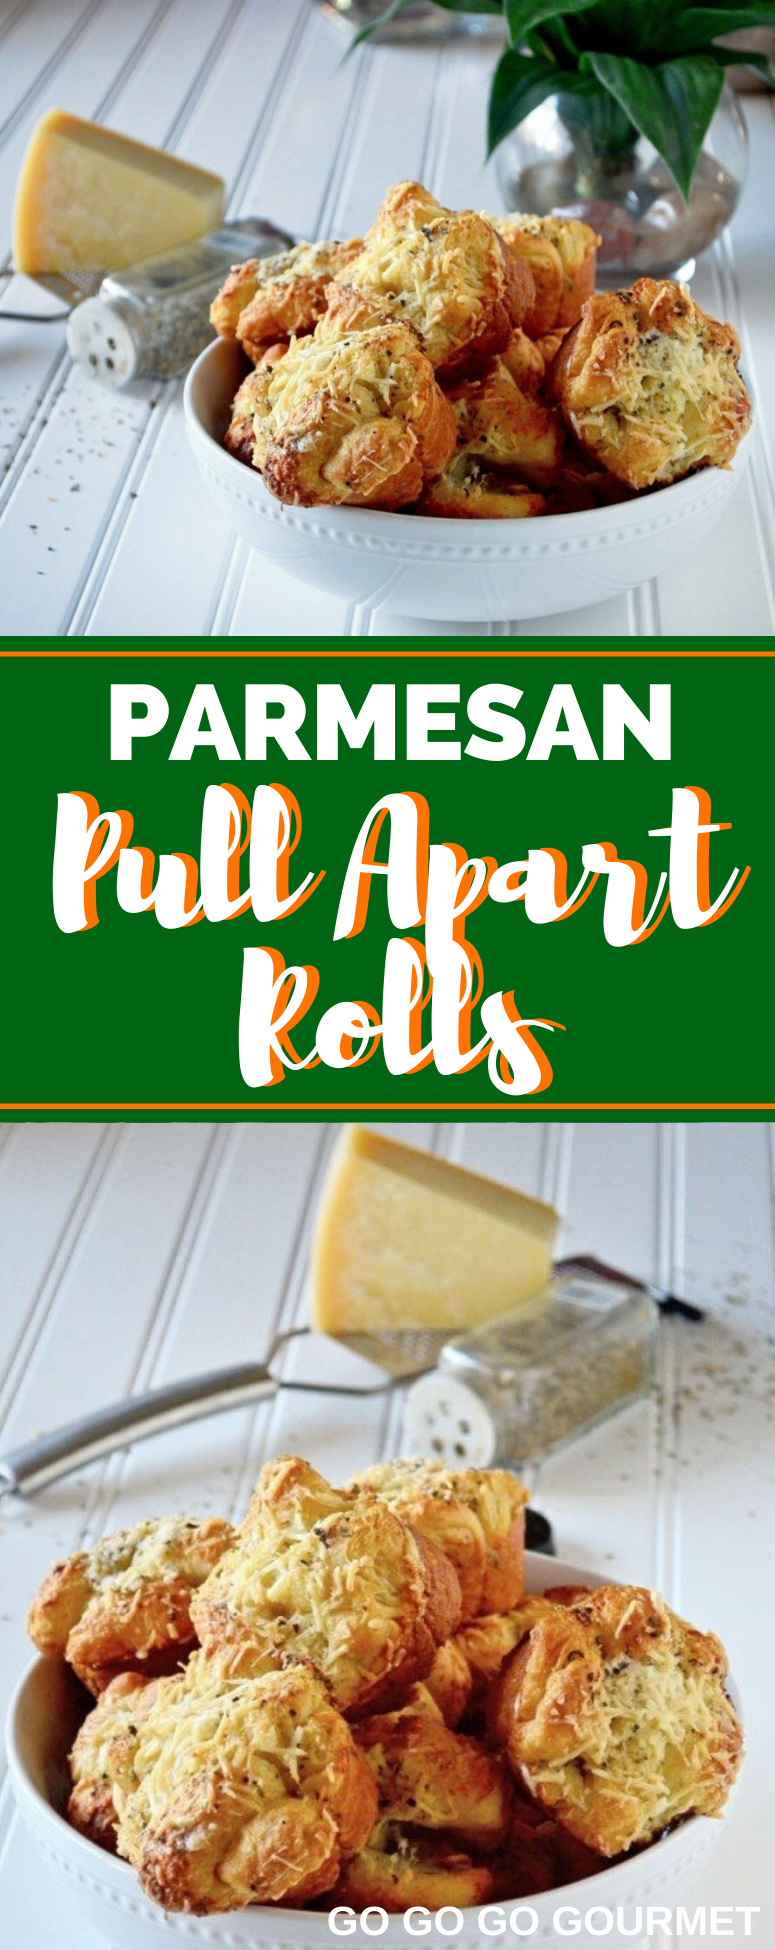 This Garlic Parmesan Pull Apart Rolls recipe is made easy with pre-made crescent roll dough! They taste just as good as homemade rolls, without all of the work! #gogogogourmet #garlicparmesanpullapartrolls #pullapartrolls #homemadebread via @gogogogourmet